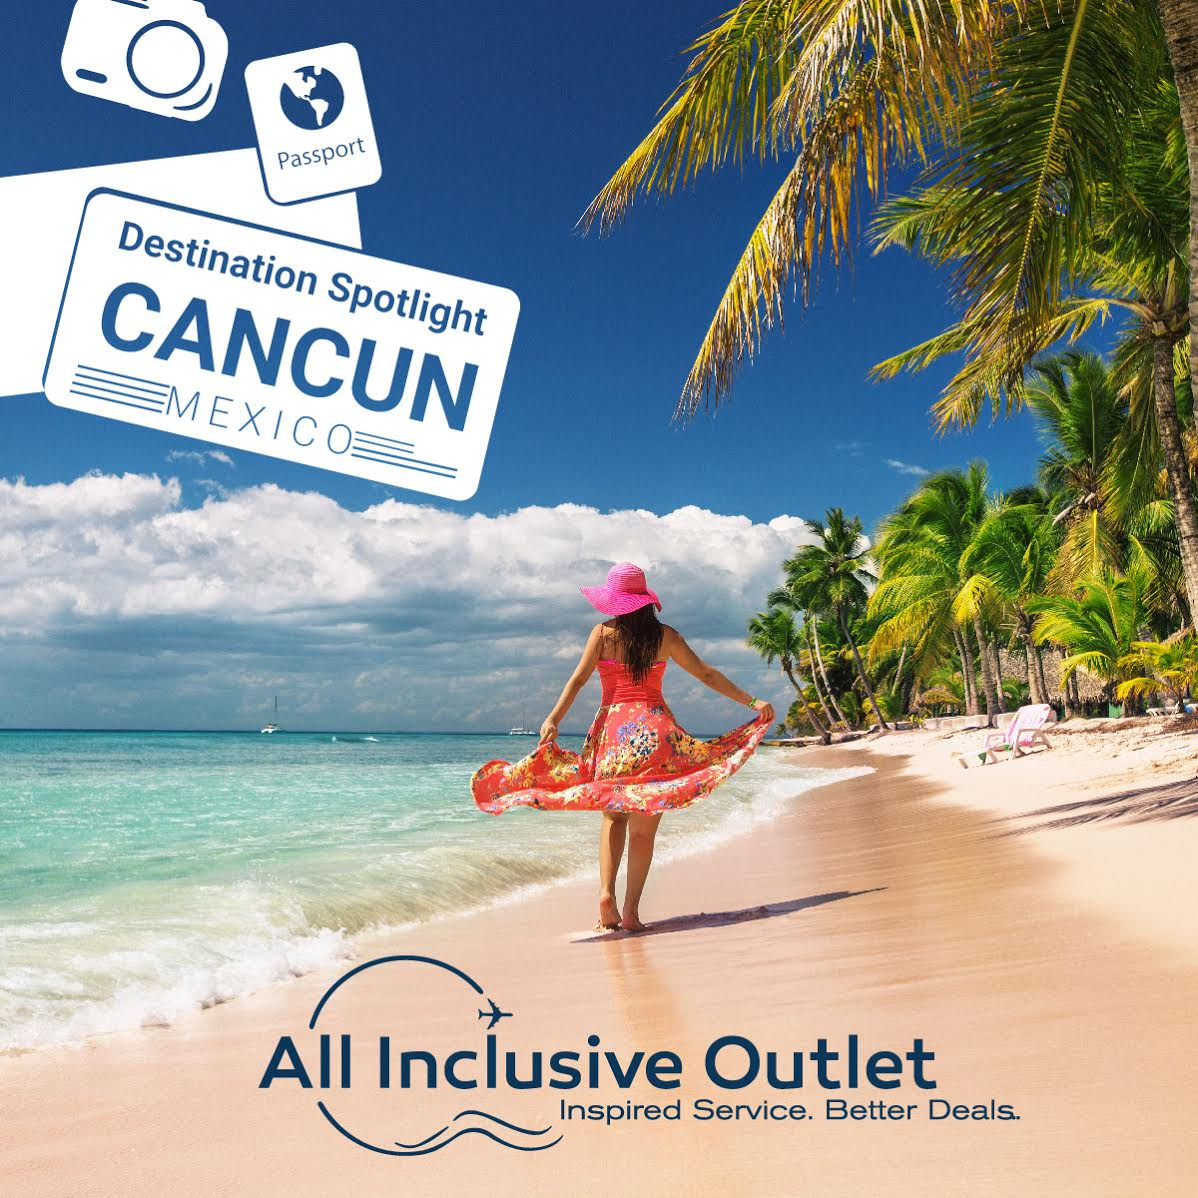 All inclusive outlet coupons